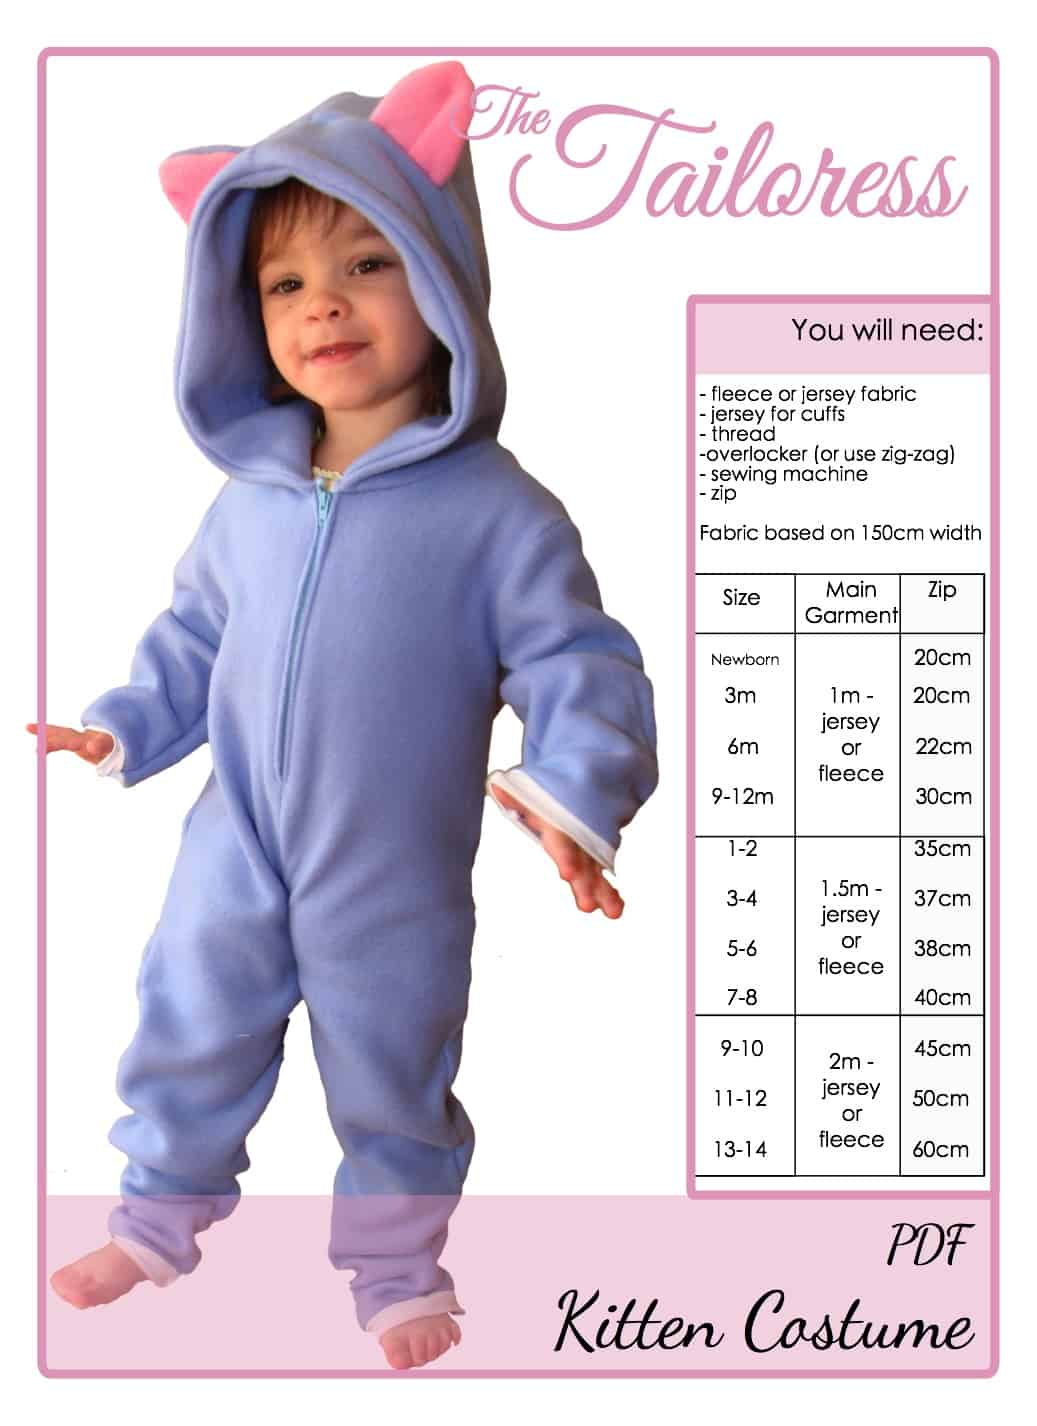 The Tailoress PDF Sewing Patterns - KITTEN - Playsuit Costume Pyjama Tutorial